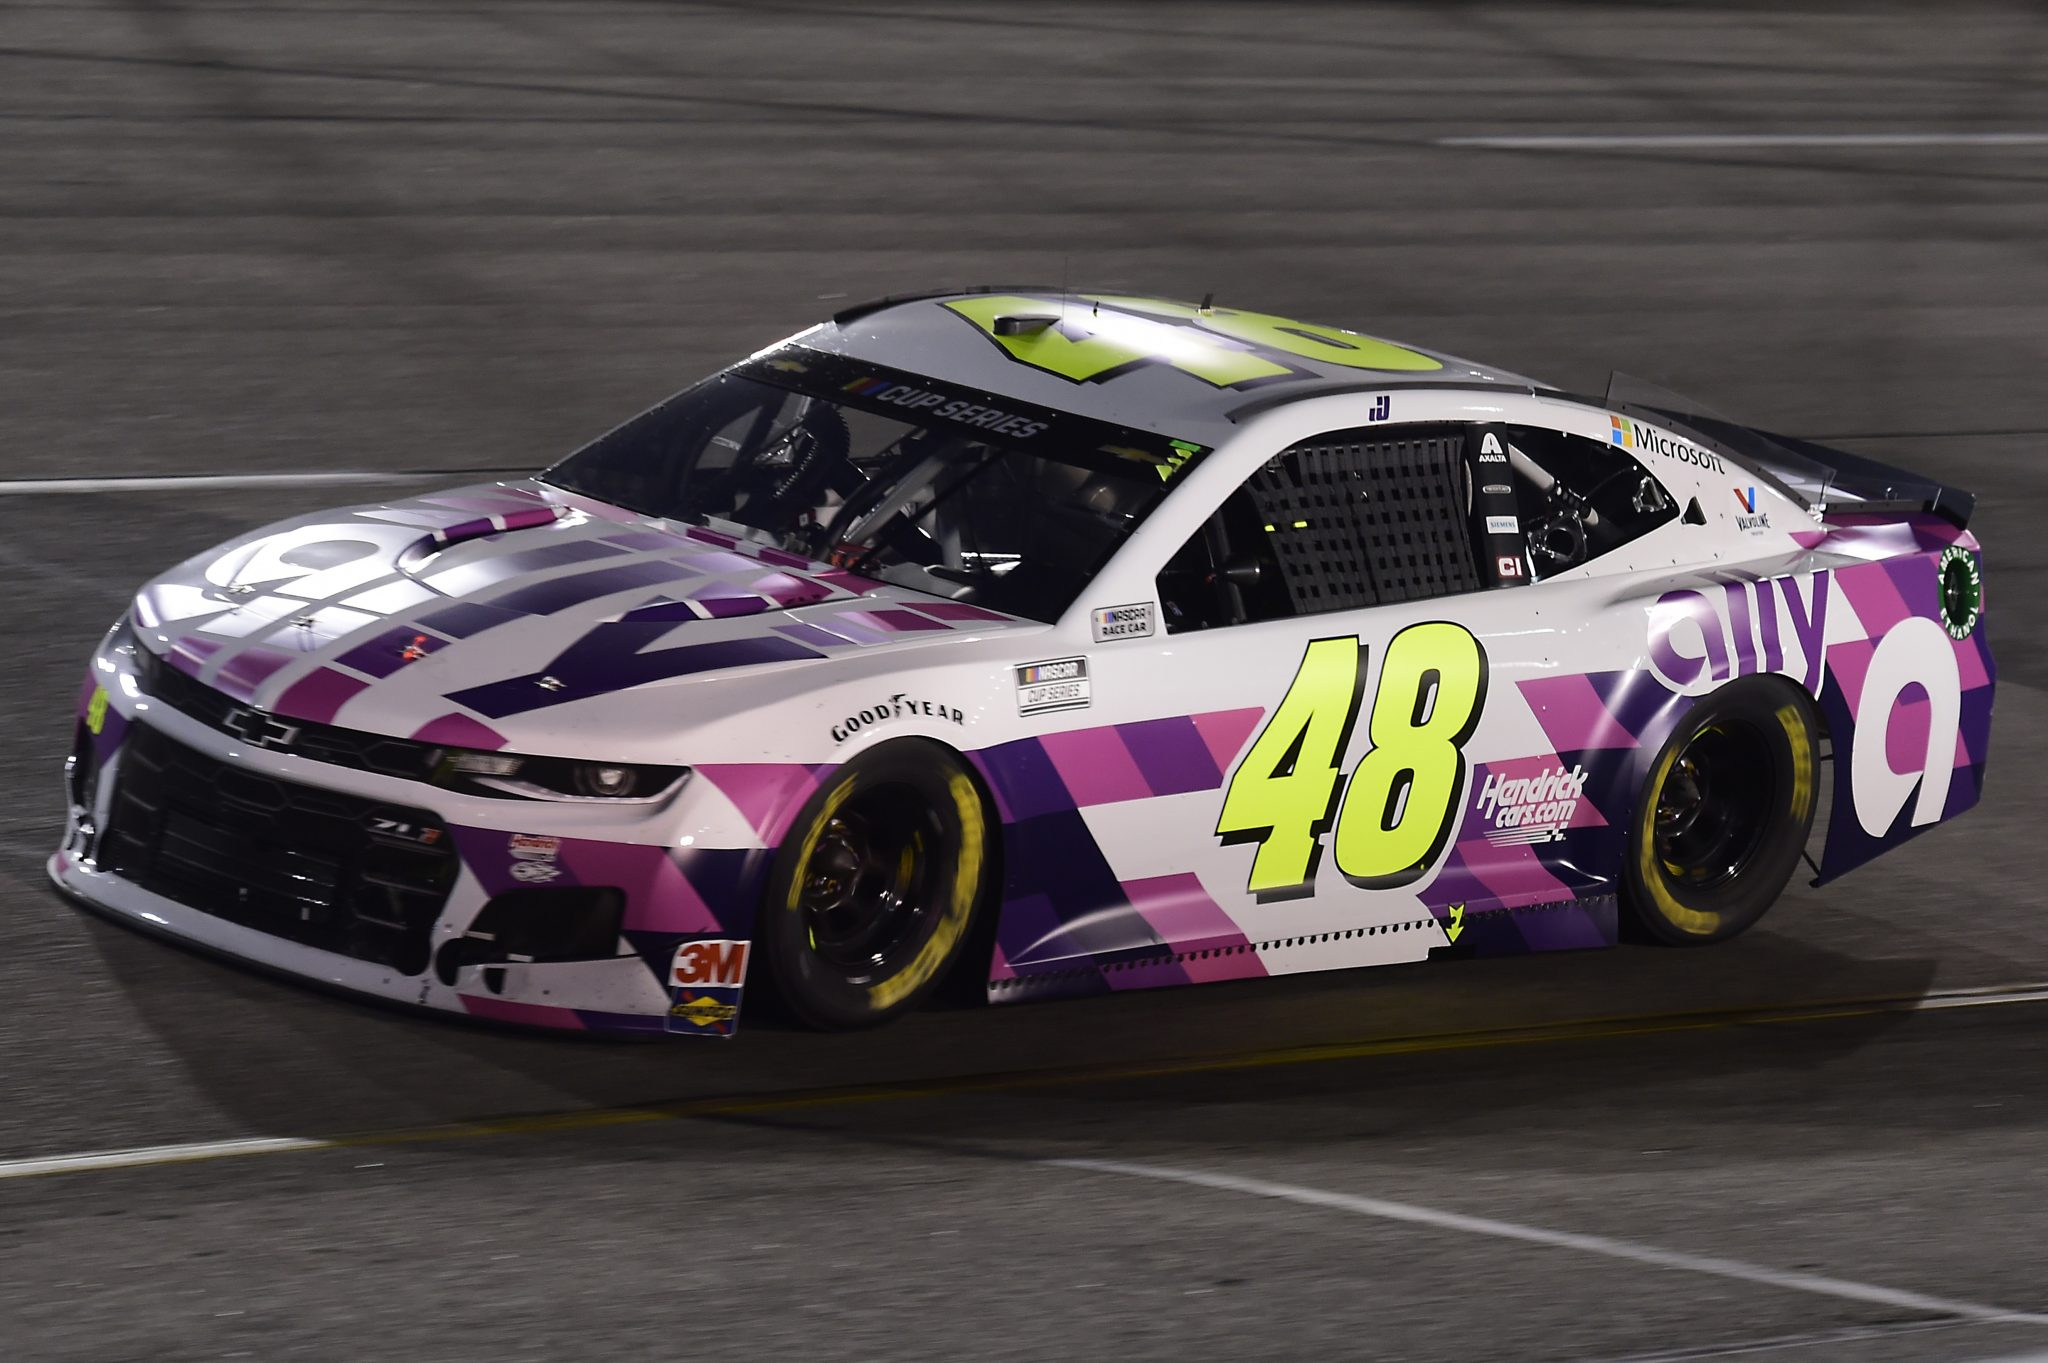 RICHMOND, VIRGINIA - SEPTEMBER 12: Jimmie Johnson, driver of the #48 Ally Chevrolet, drives during the NASCAR Cup Series Federated Auto Parts 400 at Richmond Raceway on September 12, 2020 in Richmond, Virginia. (Photo by Jared C. Tilton/Getty Images) | Getty Images